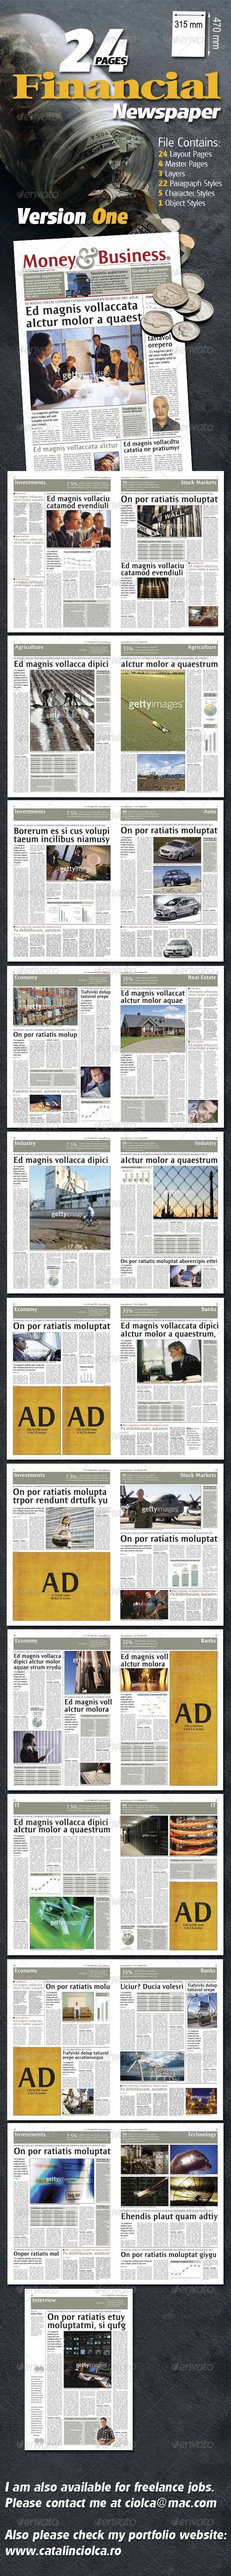 GraphicRiver 24 Pages Financial Newspaper Version One 910903